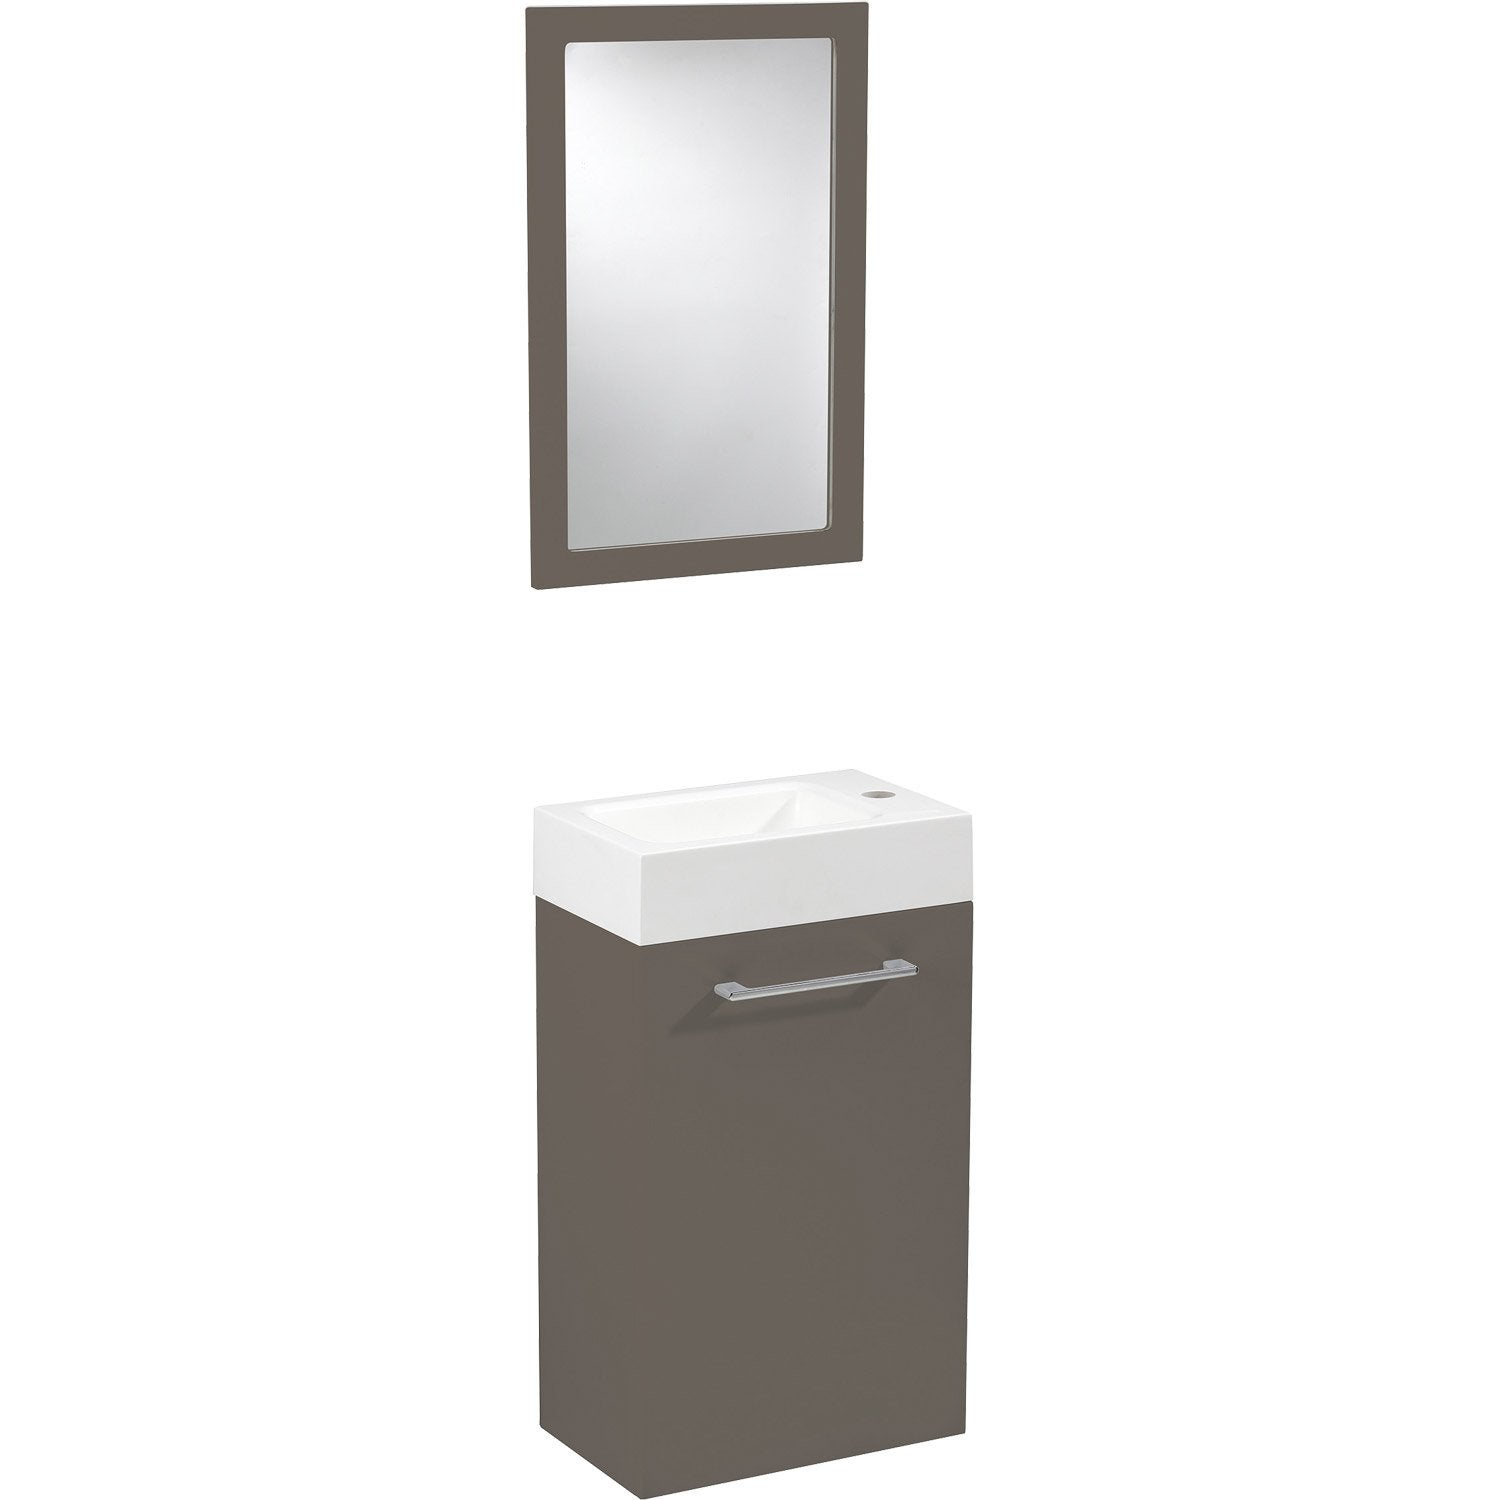 meuble lave mains avec miroir brun taupe n 3 sensea remix leroy merlin. Black Bedroom Furniture Sets. Home Design Ideas